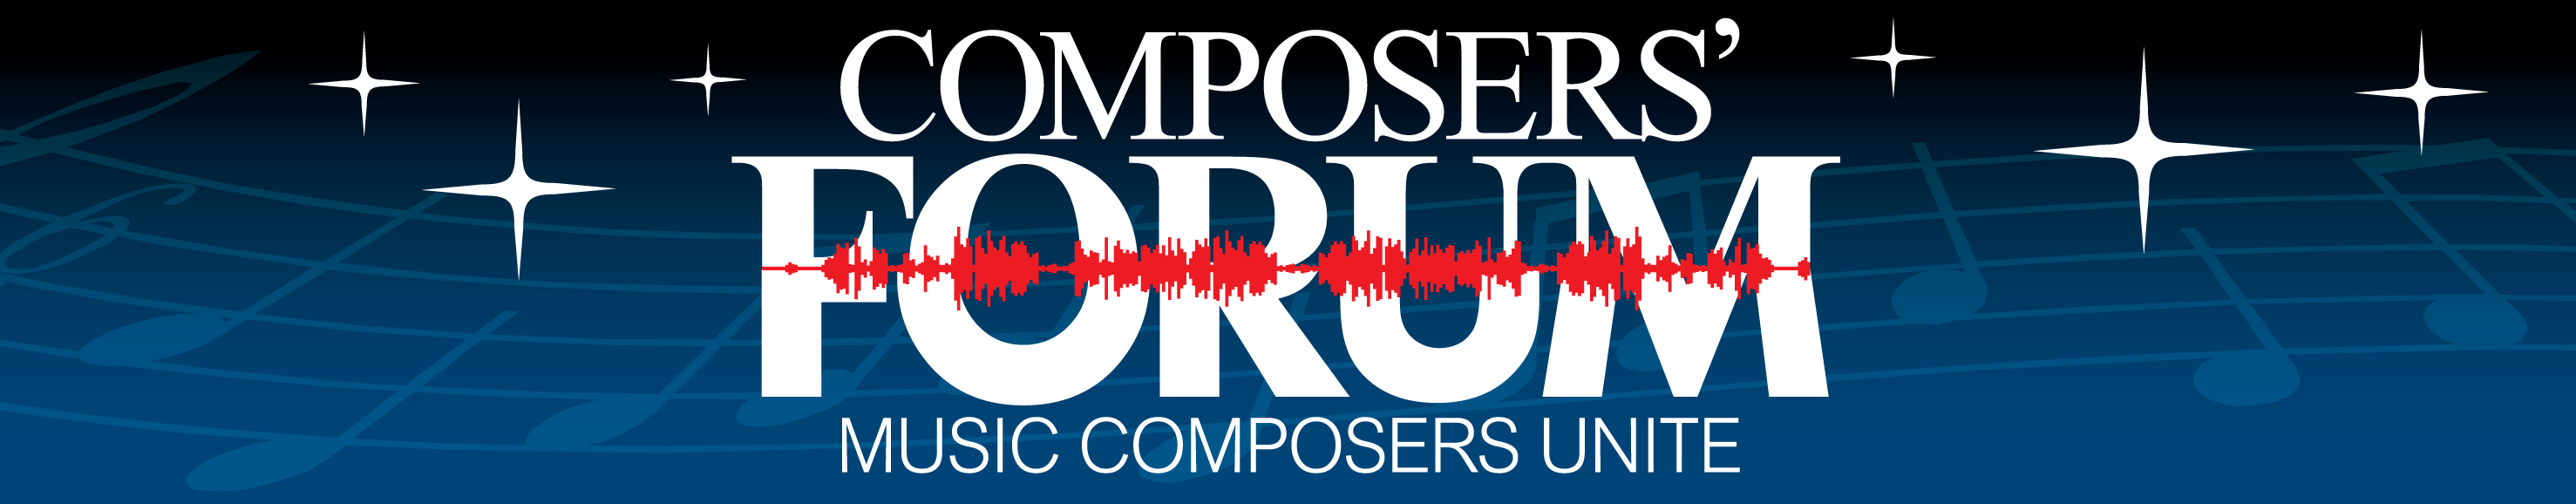 Composers' Forum Logo